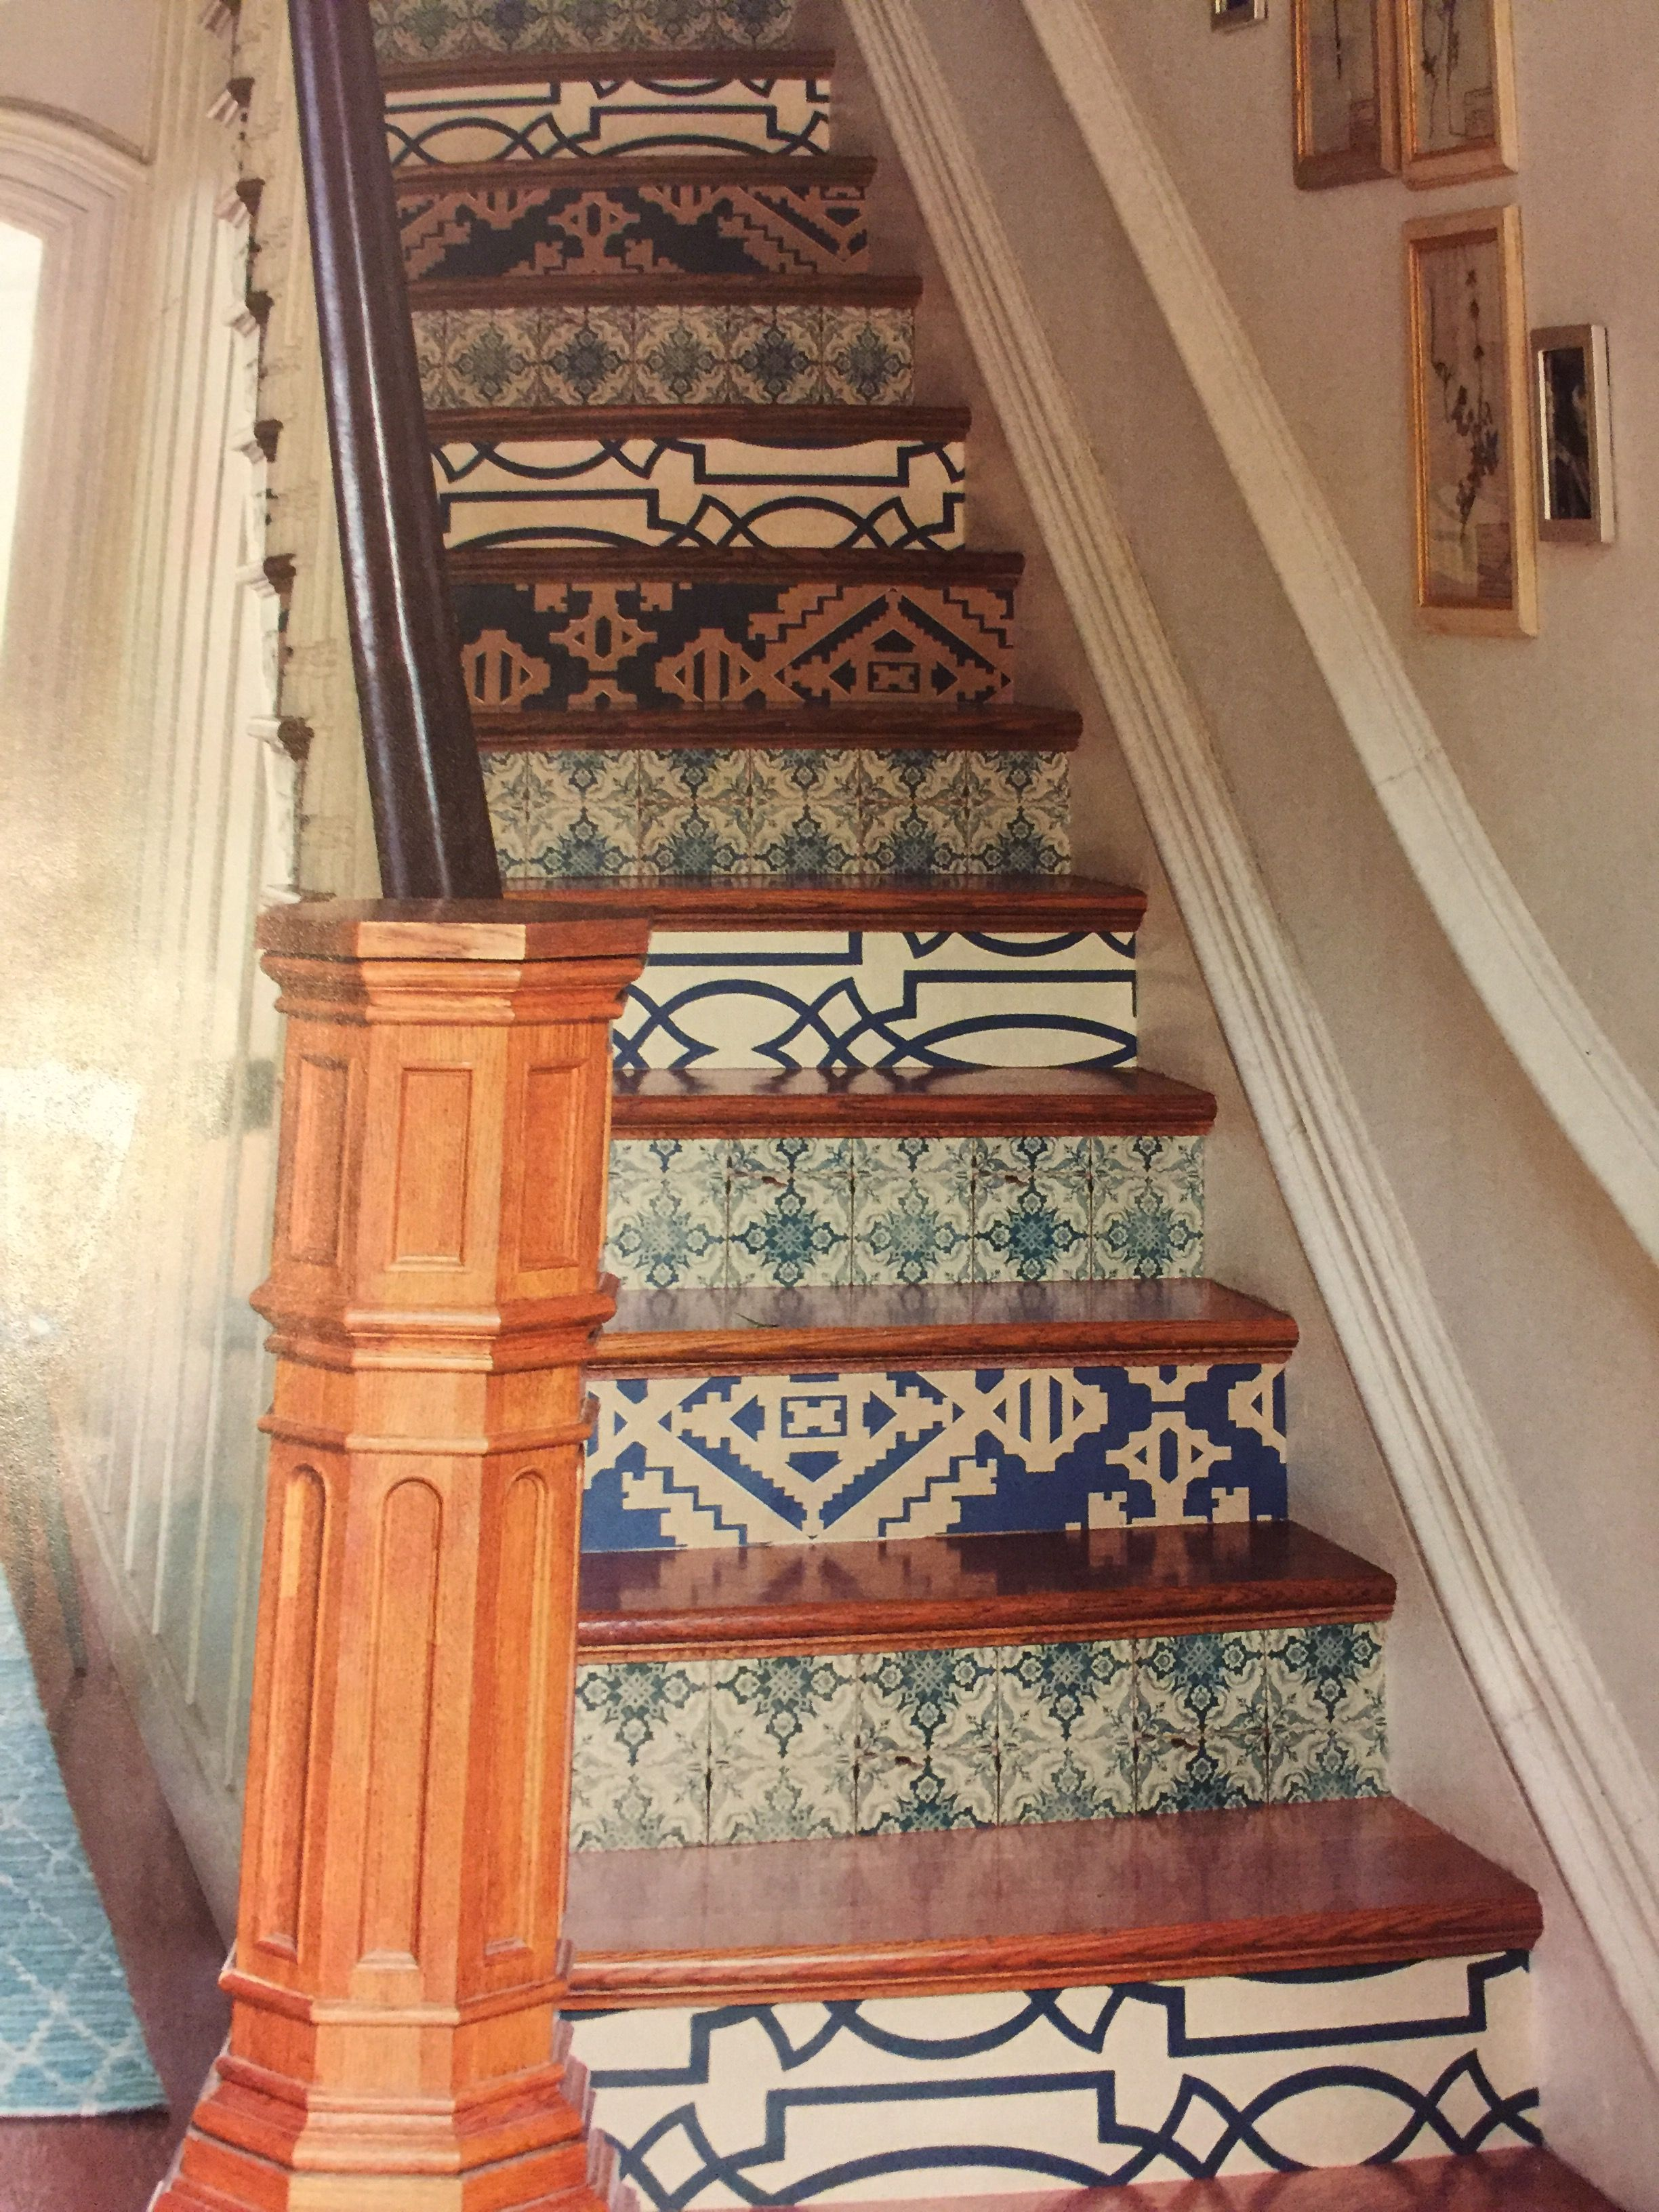 Stair inspiration | Stairs, Home, Home decor